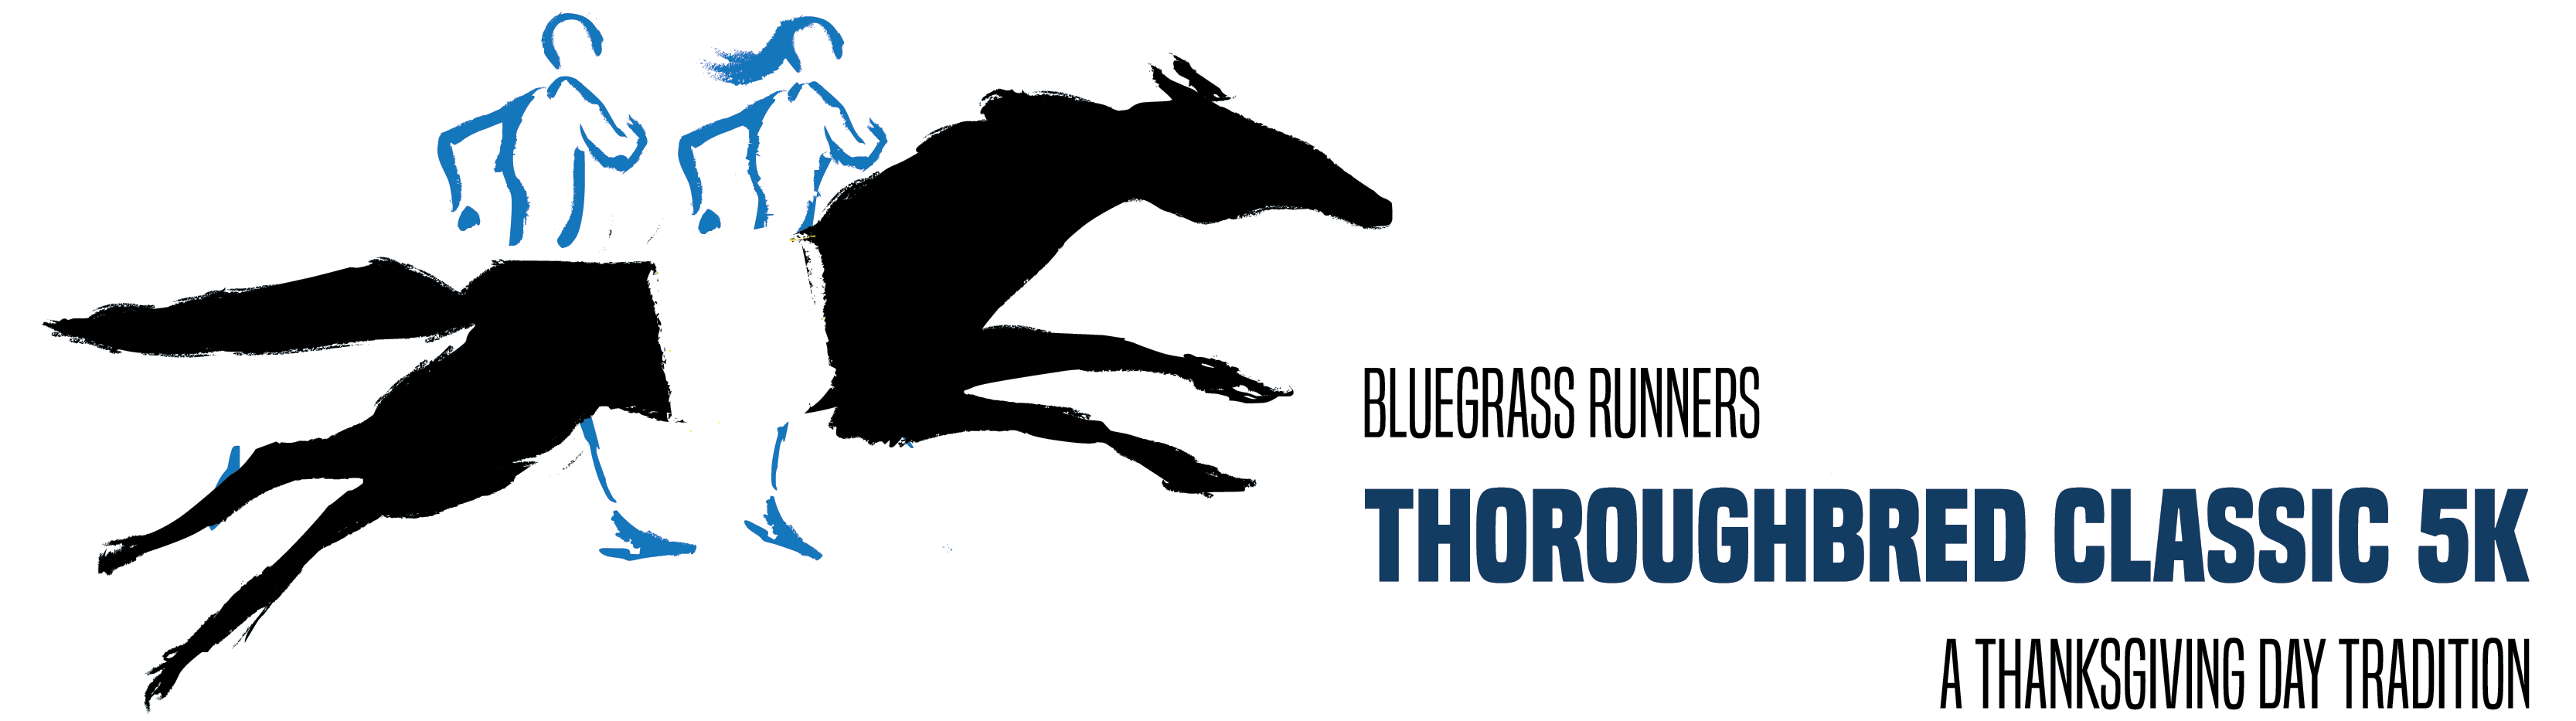 Bluegrass Runners Thoroughbred Classic 5K – Thanksgiving Day – 11/28/2019 9:00 a.m.